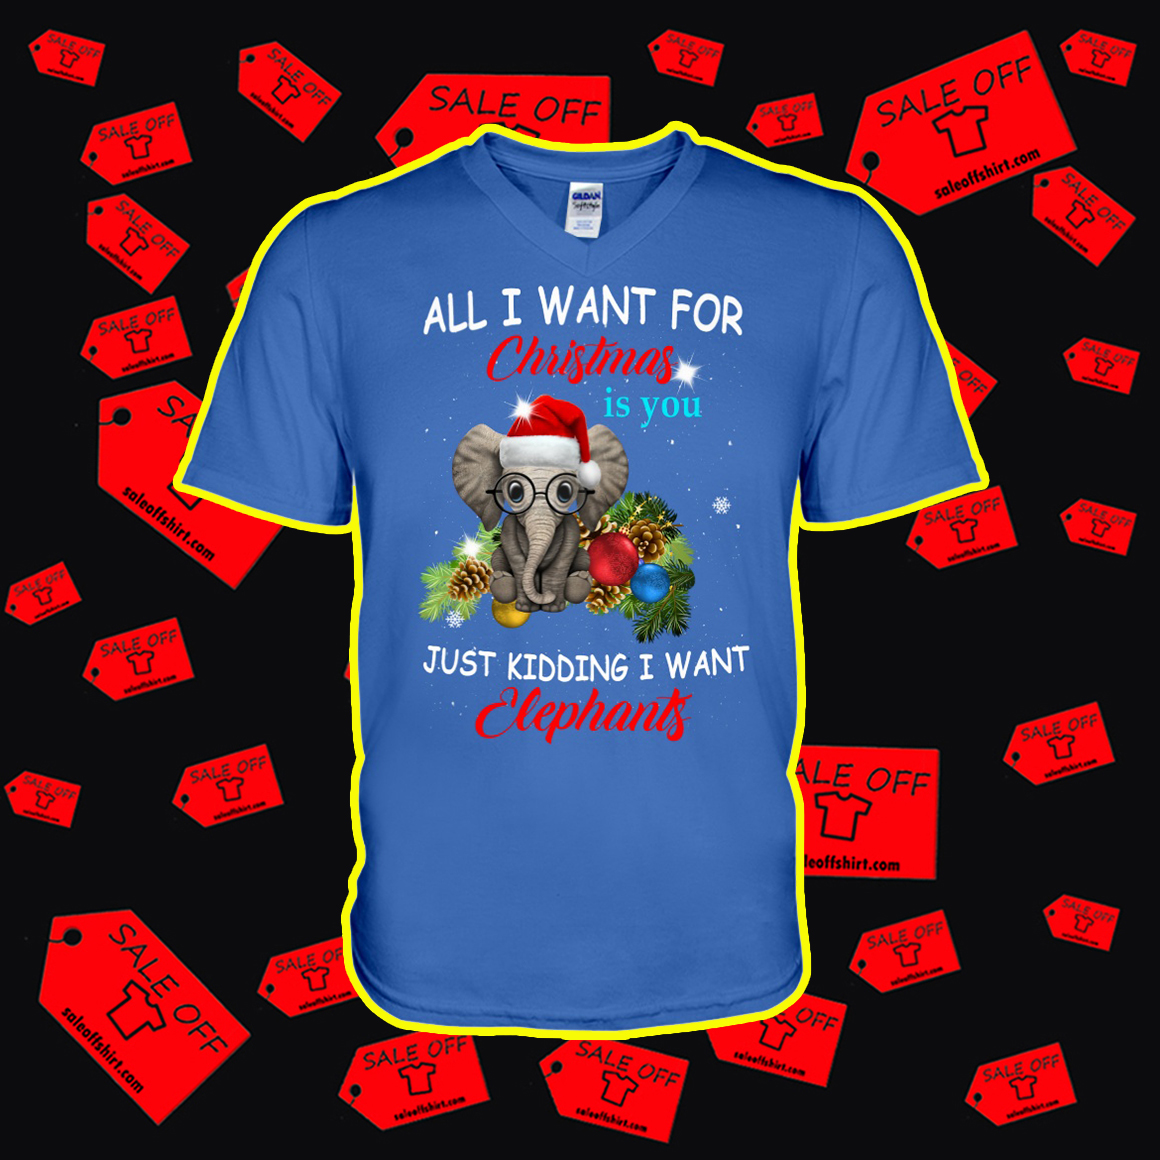 All I want for Christmas is you just kidding I want elephants v-neck